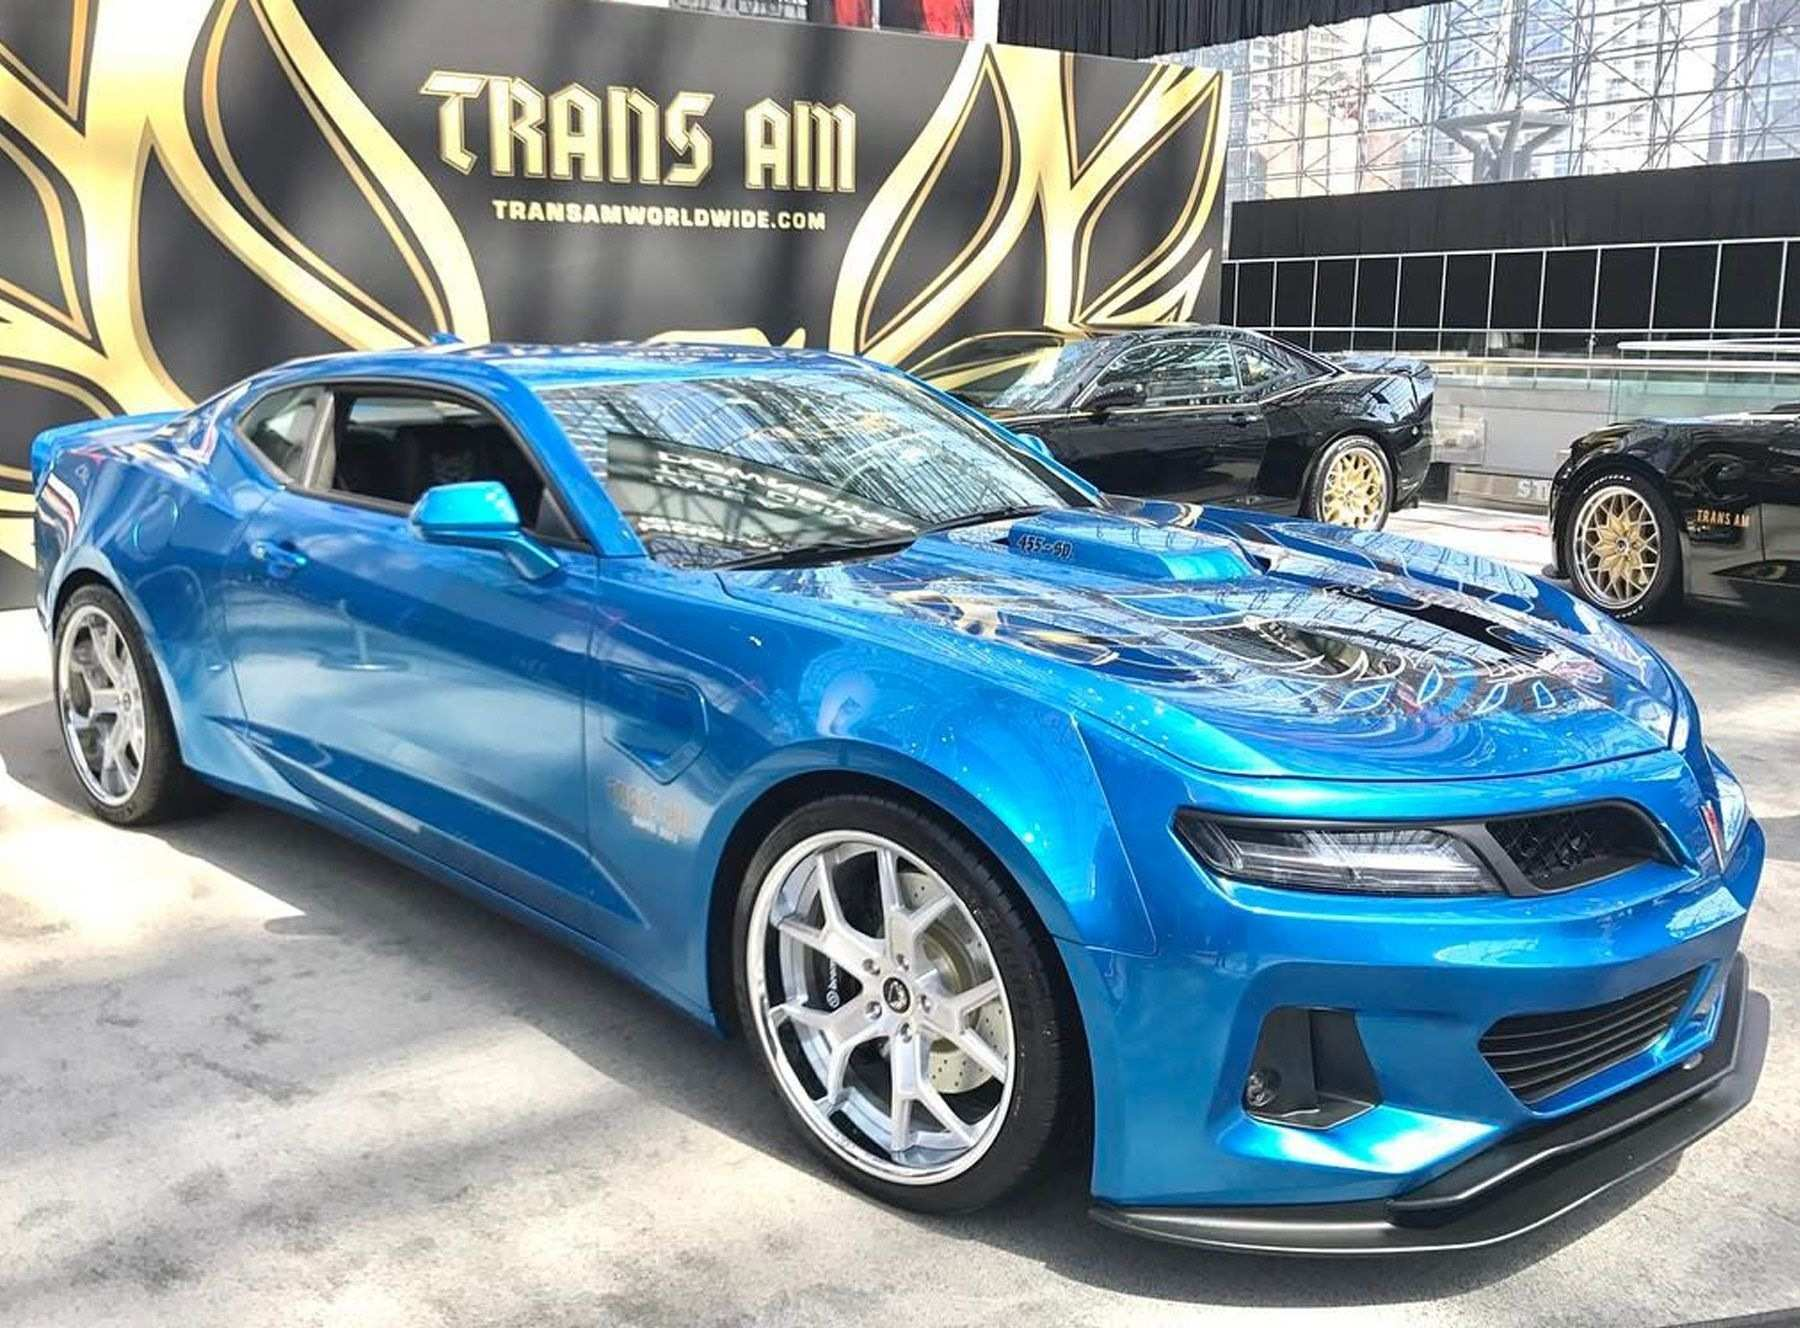 73 Best Review 2020 The Pontiac Trans Exterior and Interior for 2020 The Pontiac Trans